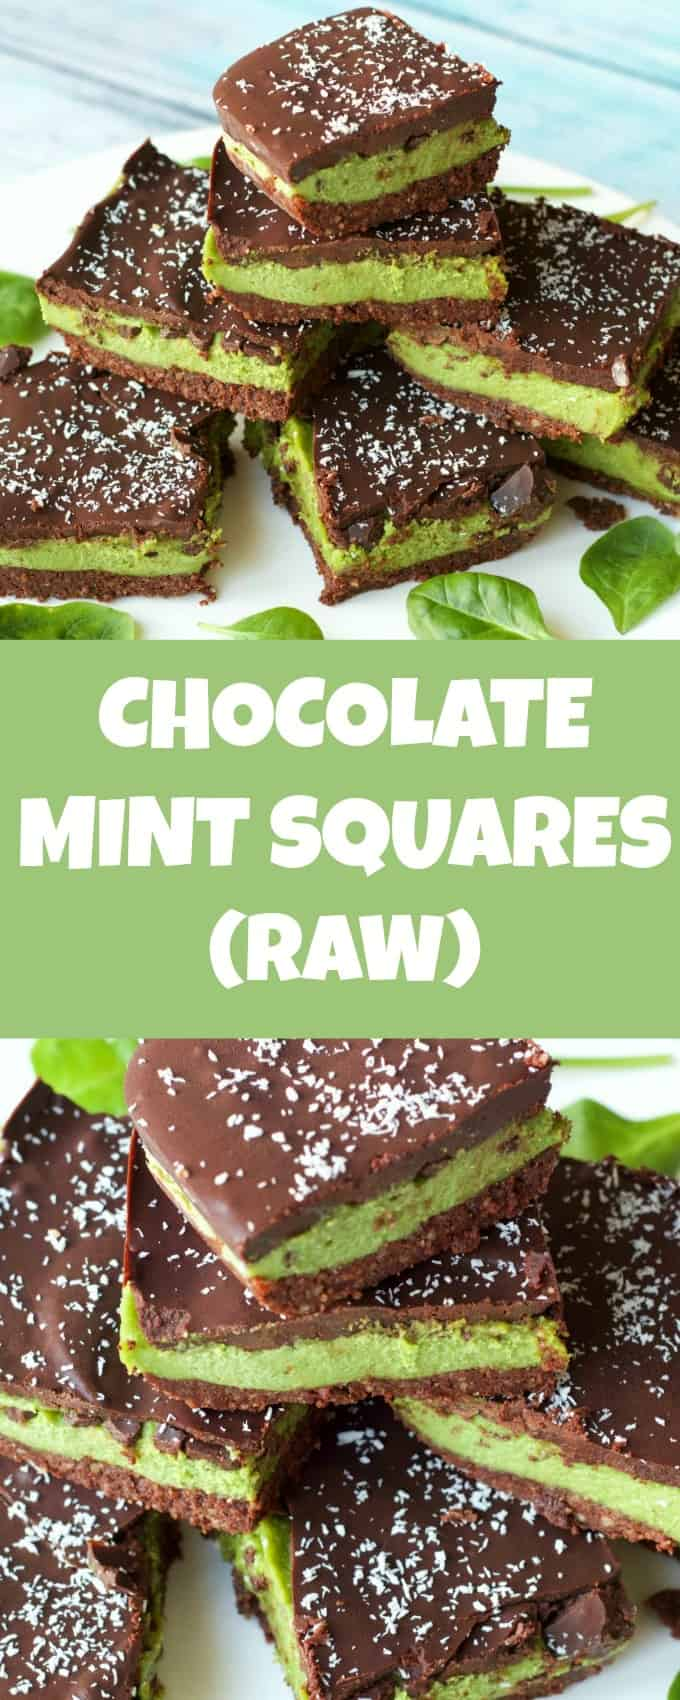 3-layers of raw vegan goodness in these raw chocolate mint squares. A biscuity base, creamy mint center and rich chocolate topping. Raw, vegan & gluten-free | lovingitvegan.com